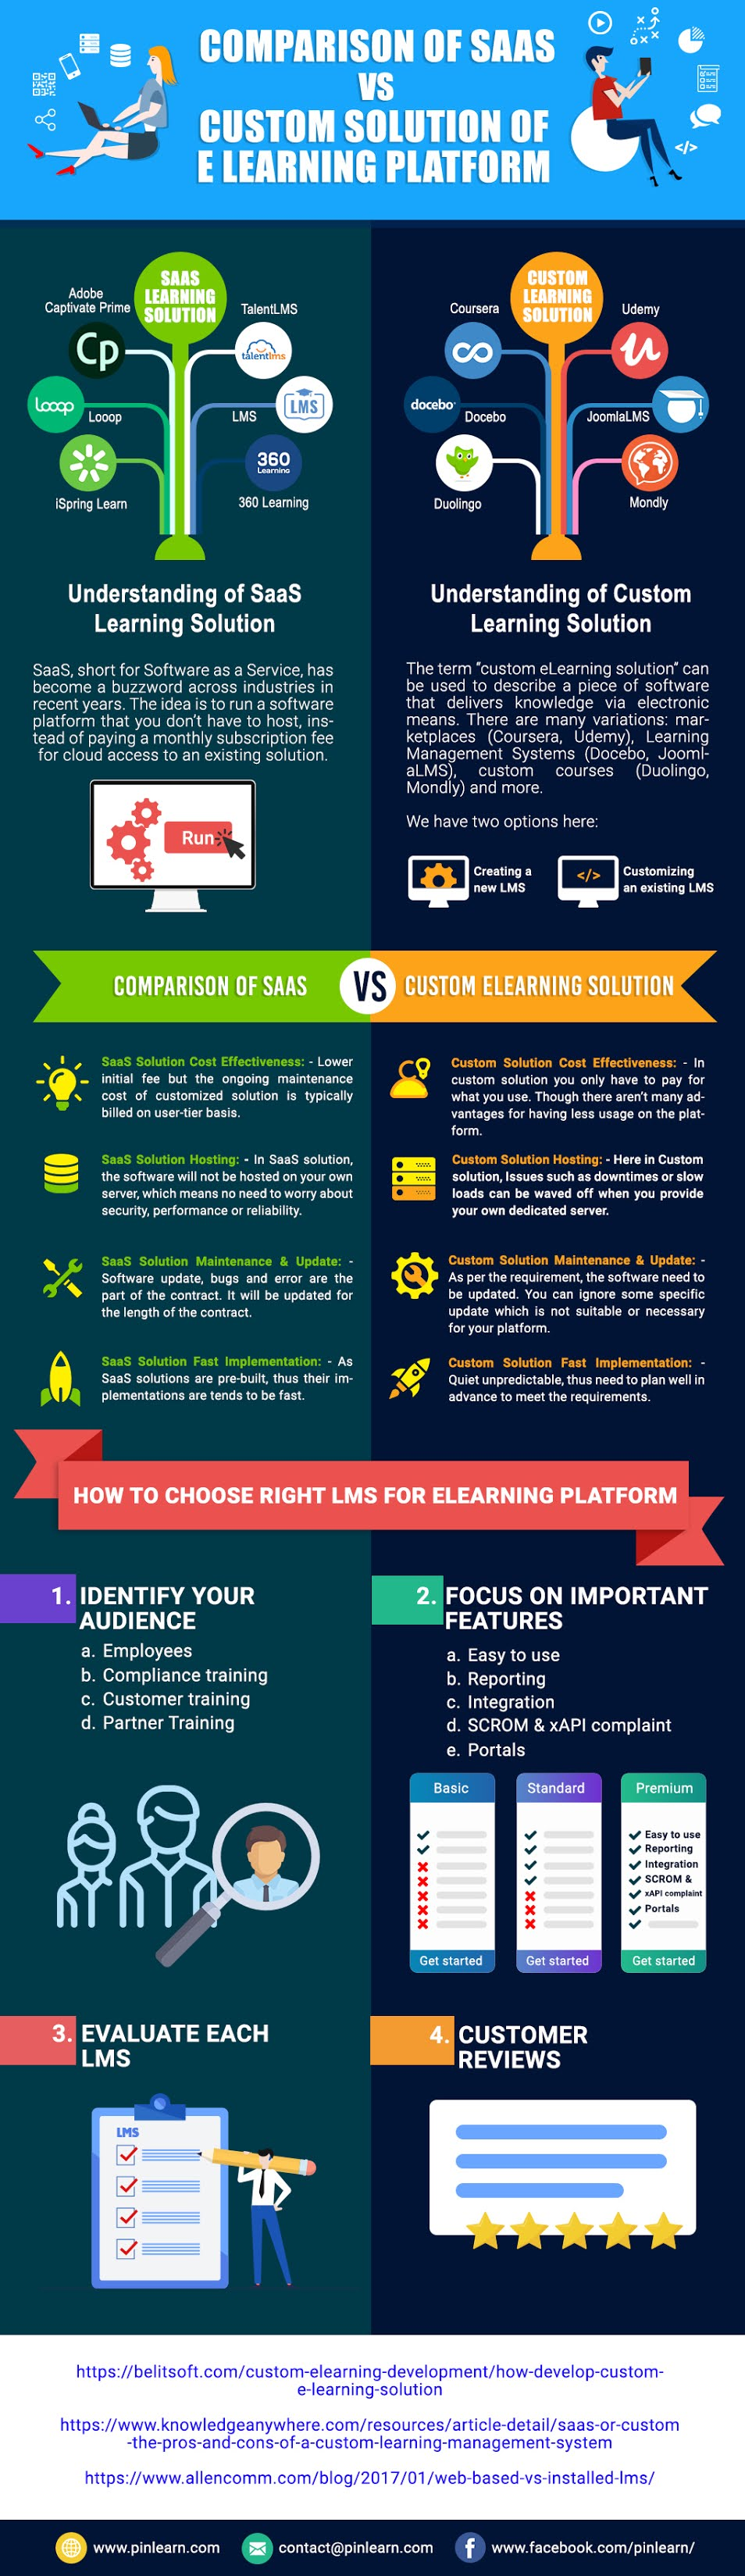 Comparison of SaaS vs Custom Solution of e learning platform #infographic#Education #eLearning #Learning #Learning Solution